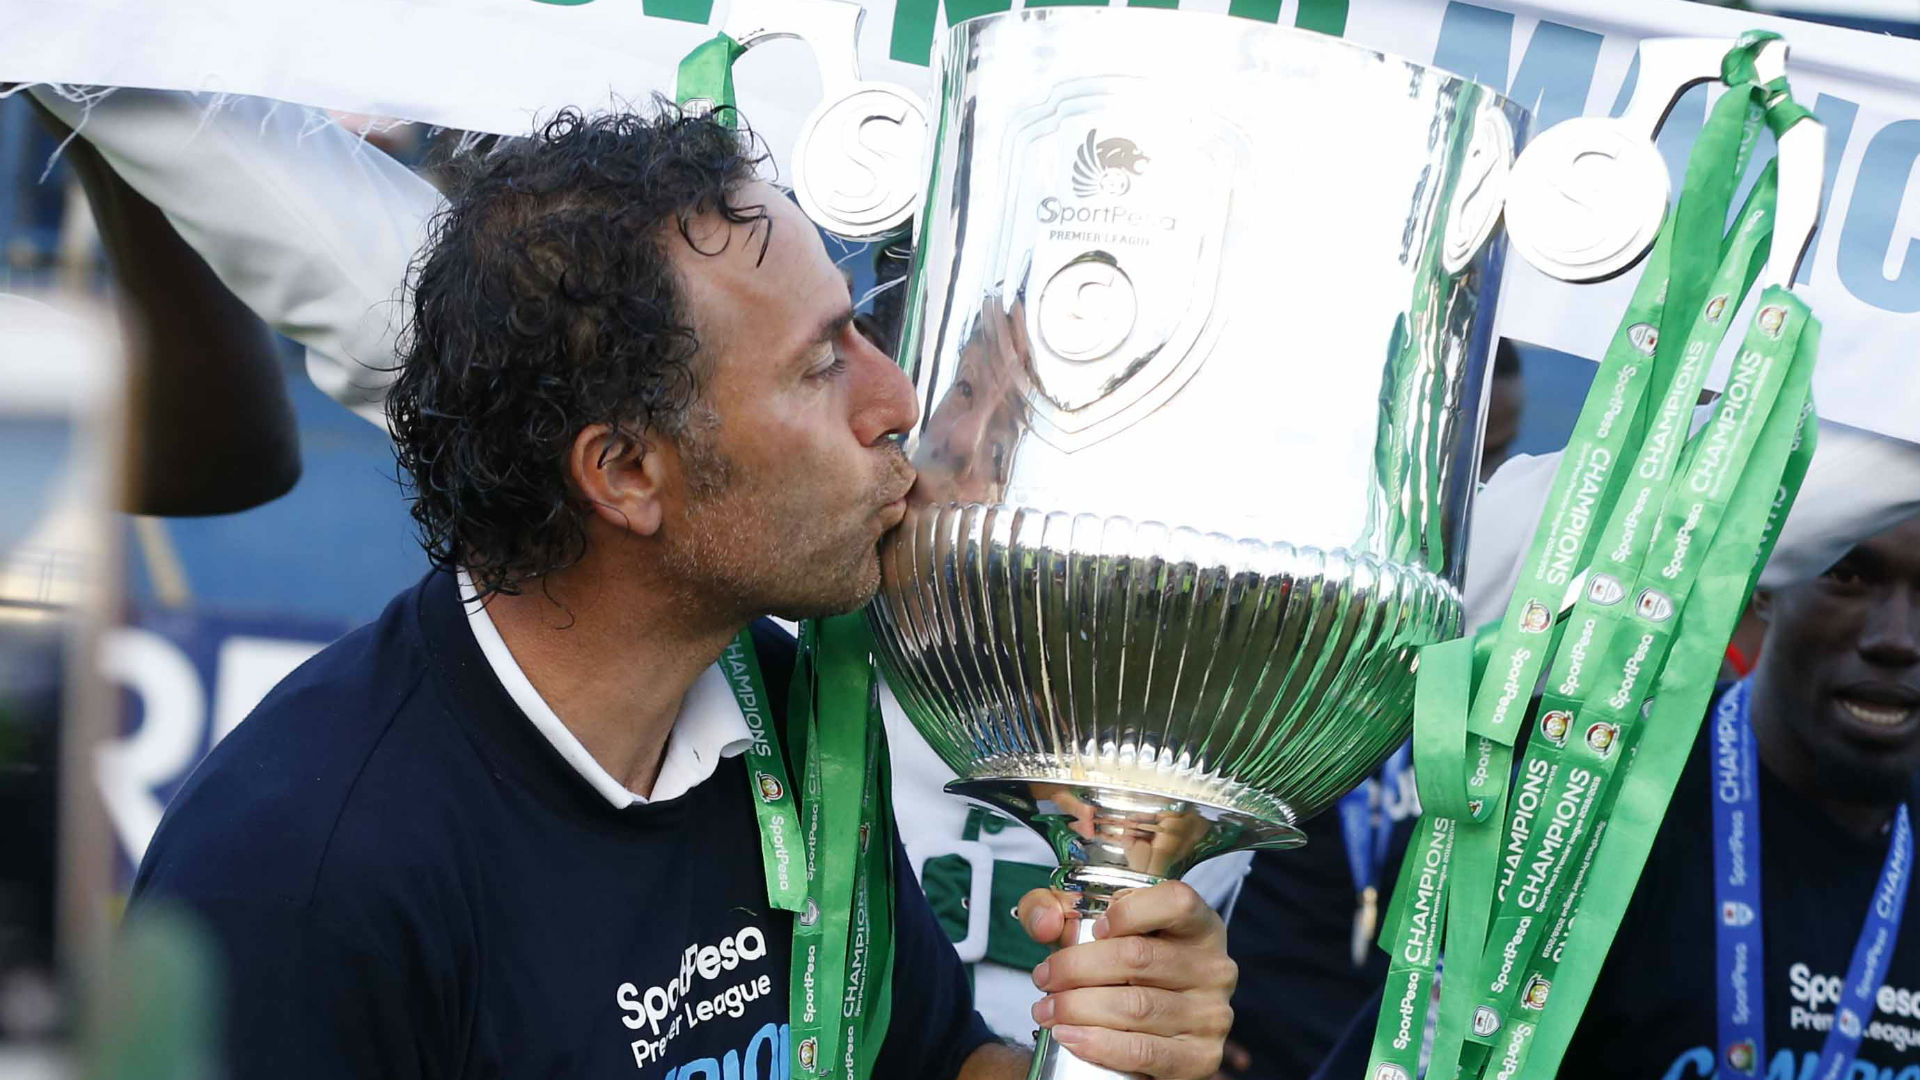 EXCLUSIVE: I sourced Turkish Airlines for Gor Mahia but were chased away – Oktay